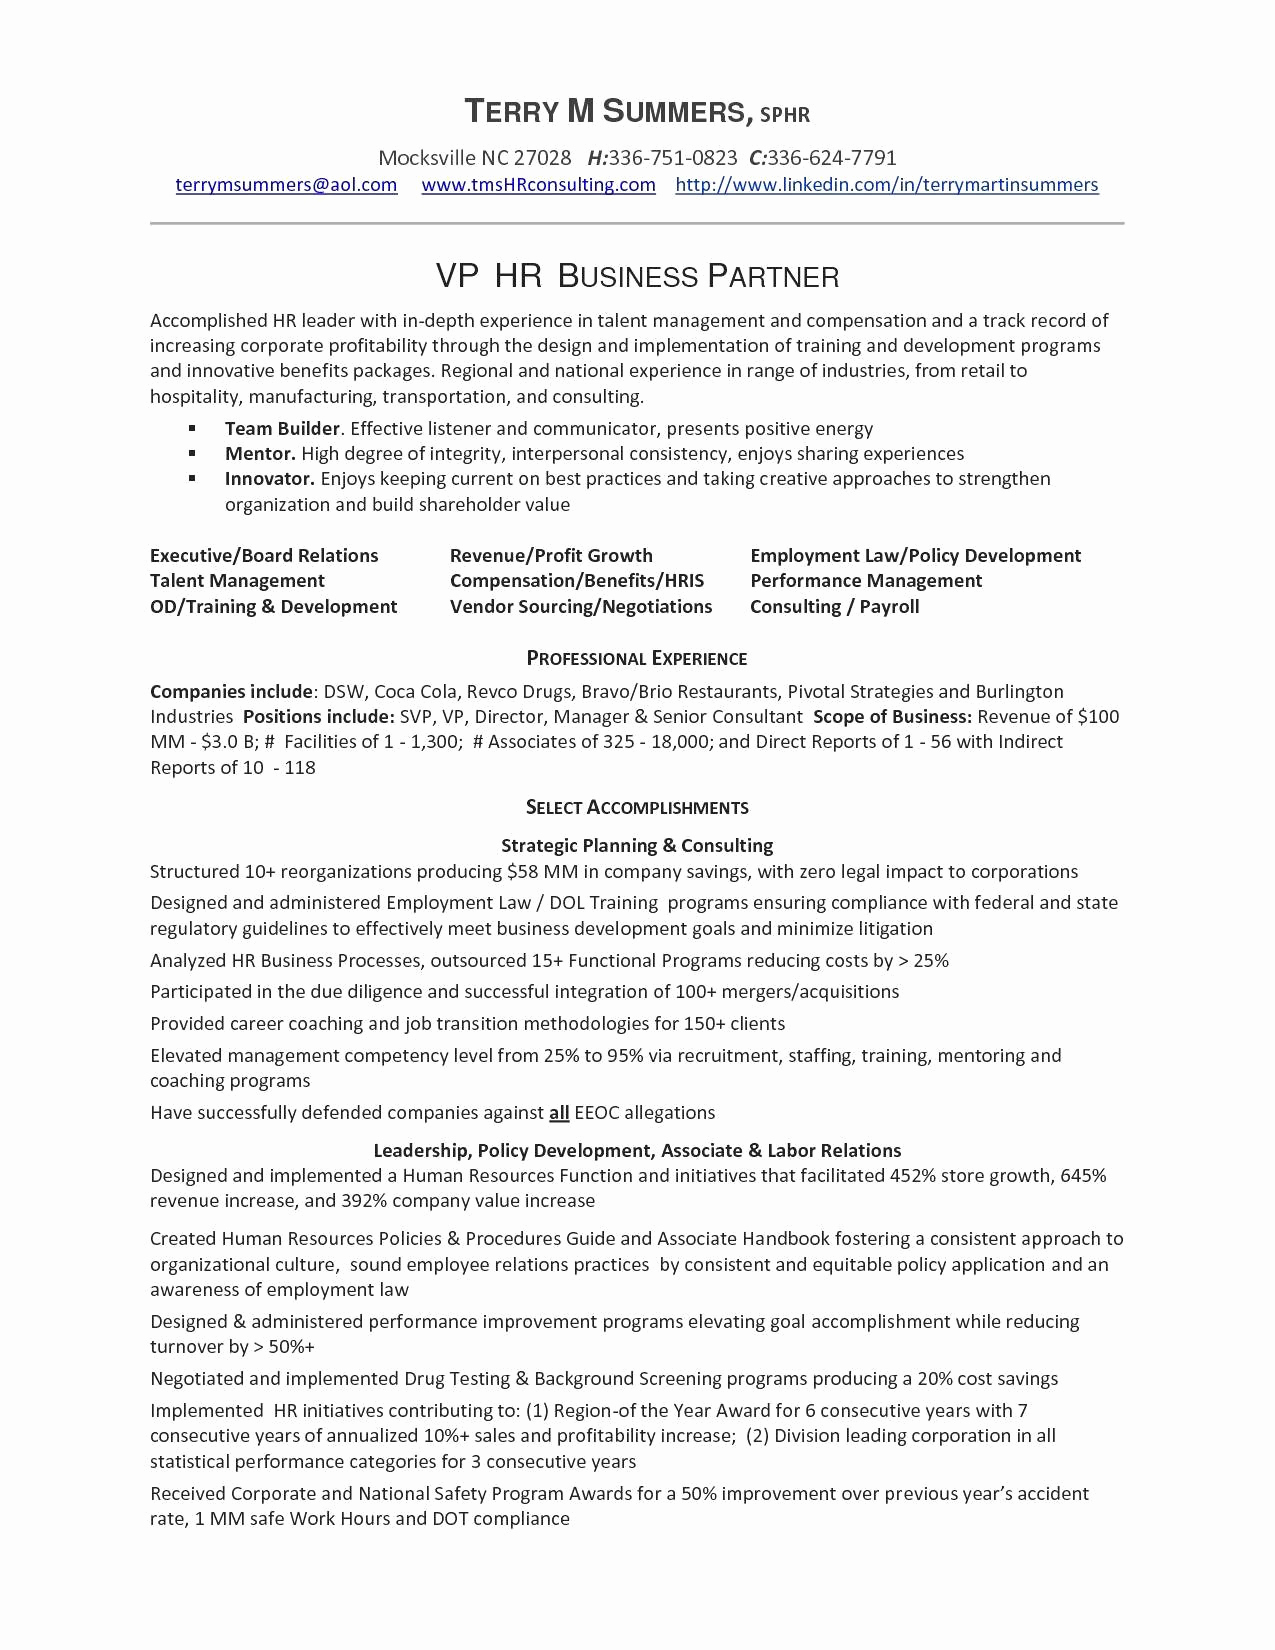 13 pta resume template collection  resume template